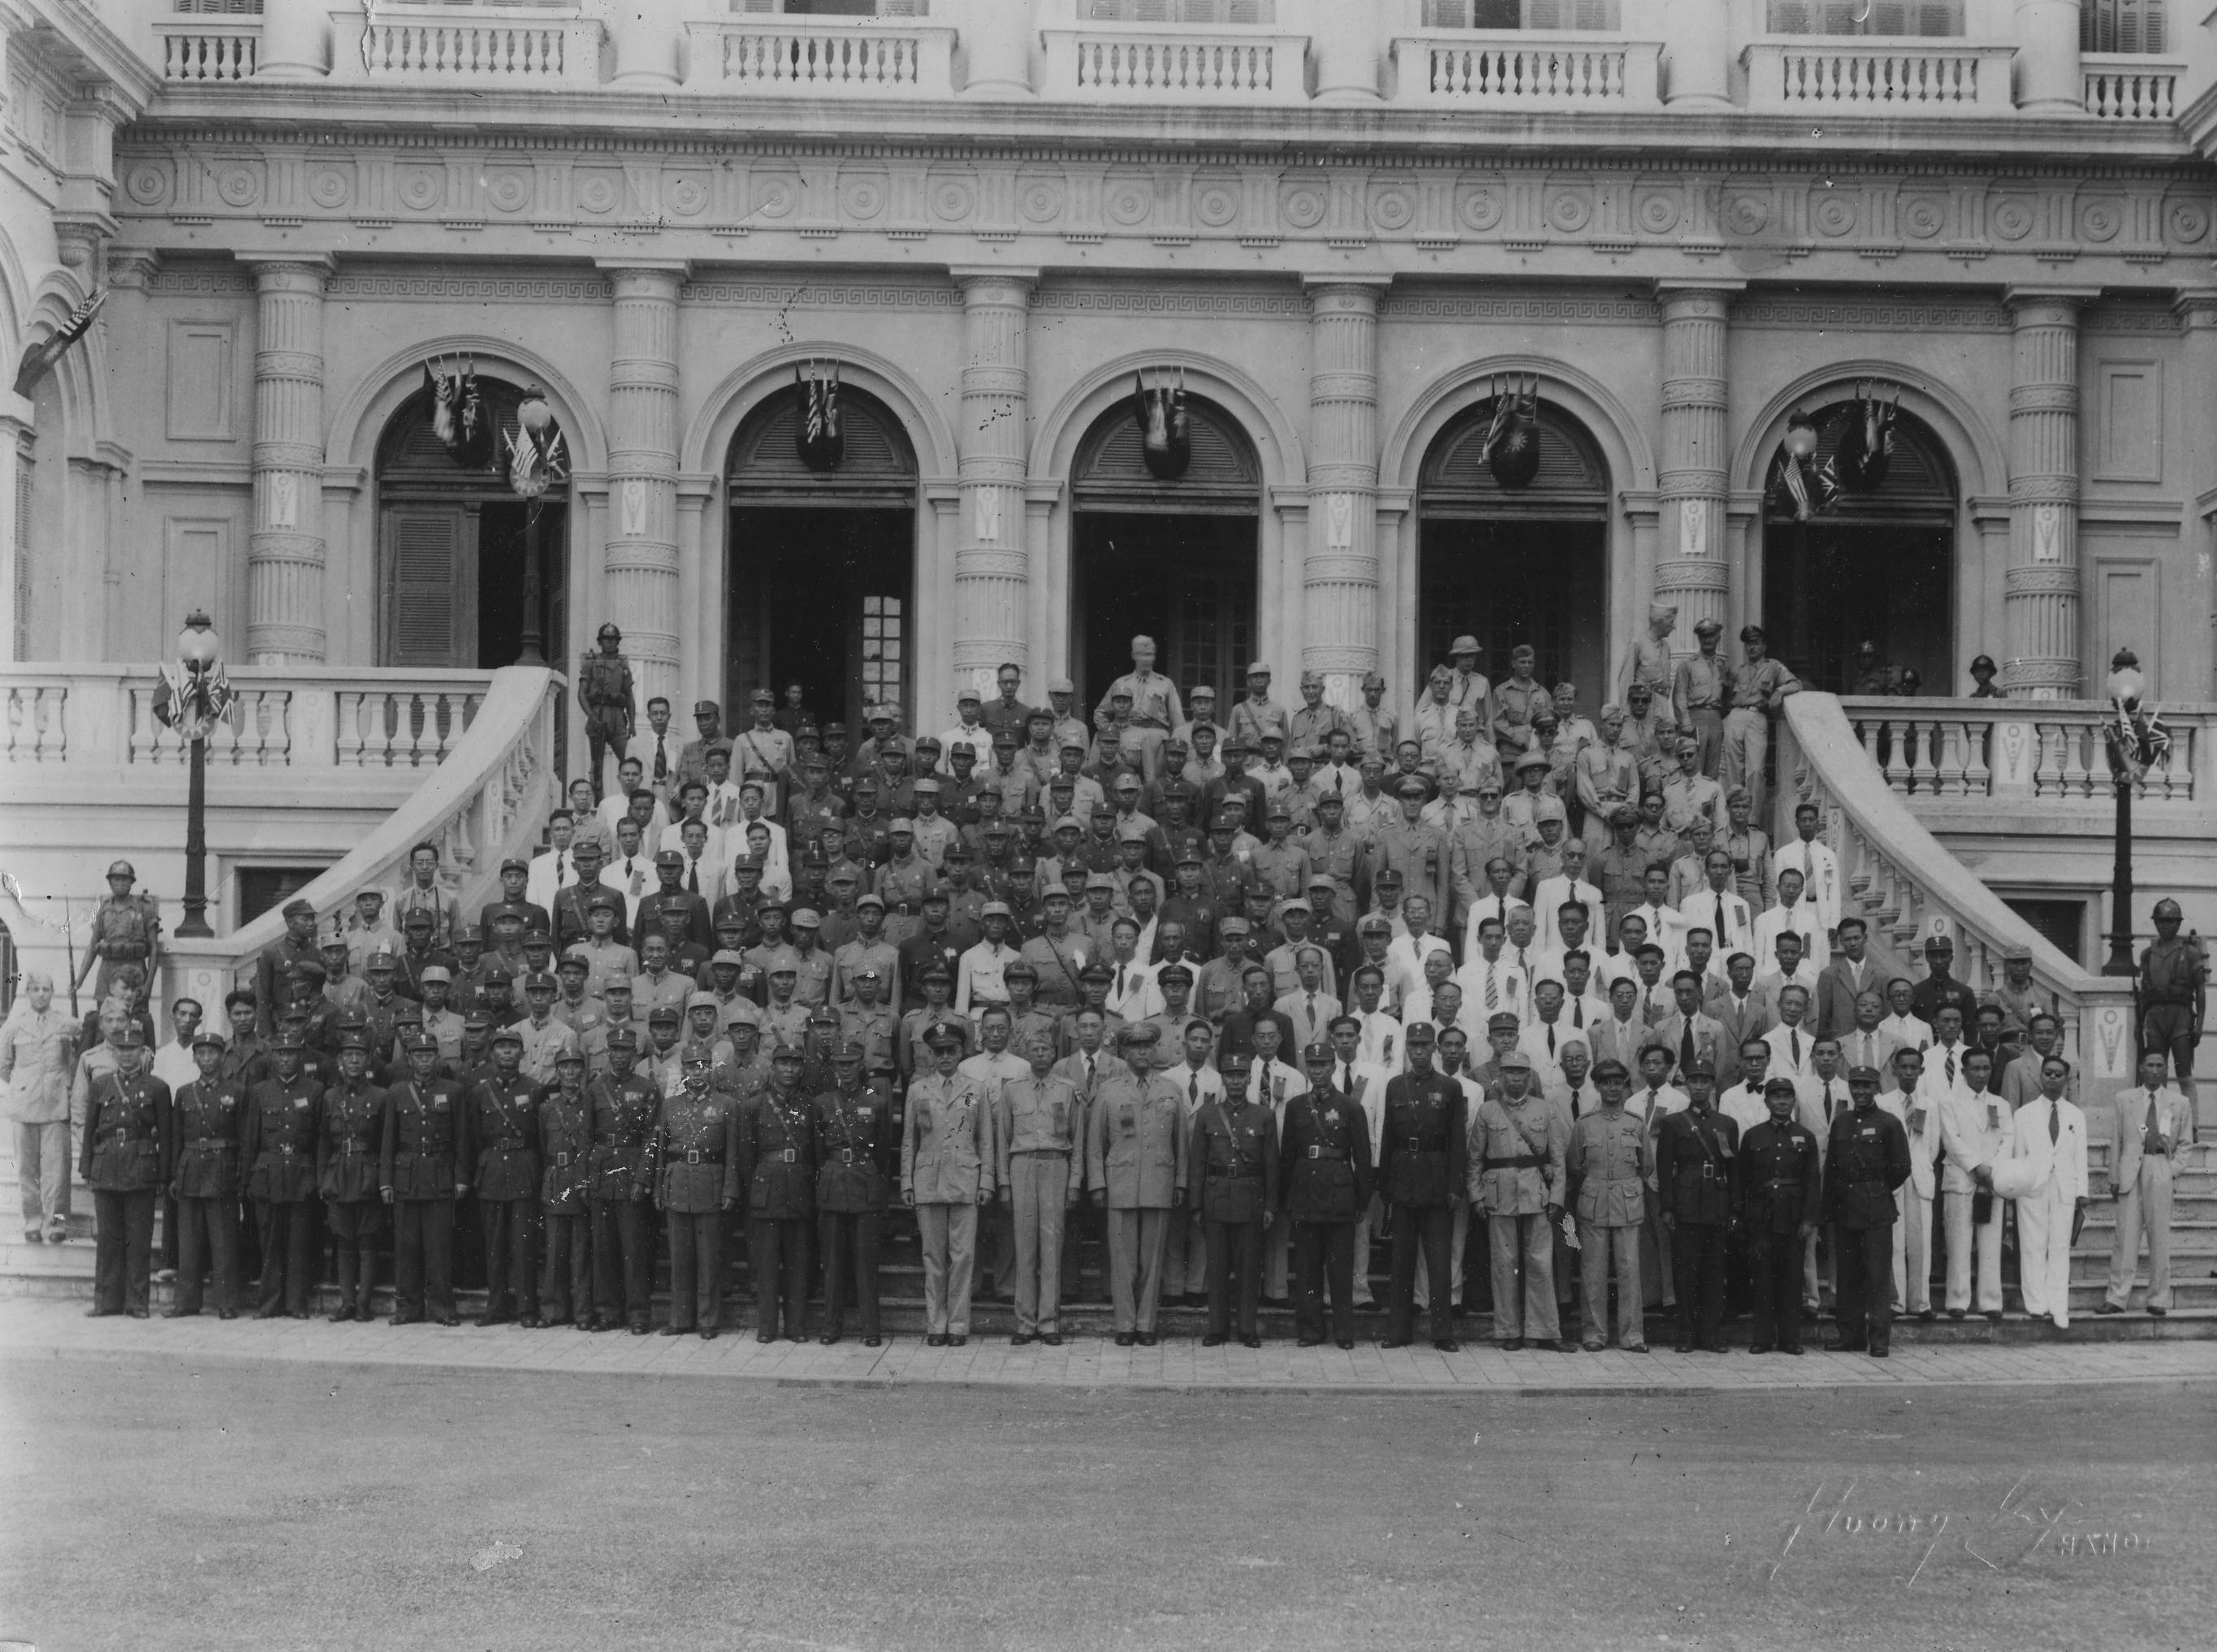 Image taken at the Governor General's Mansion in Hanoi, French Indochina, September 1945. Colonel Hutson poses with U.S., Chinese, and Vietnamese officials.